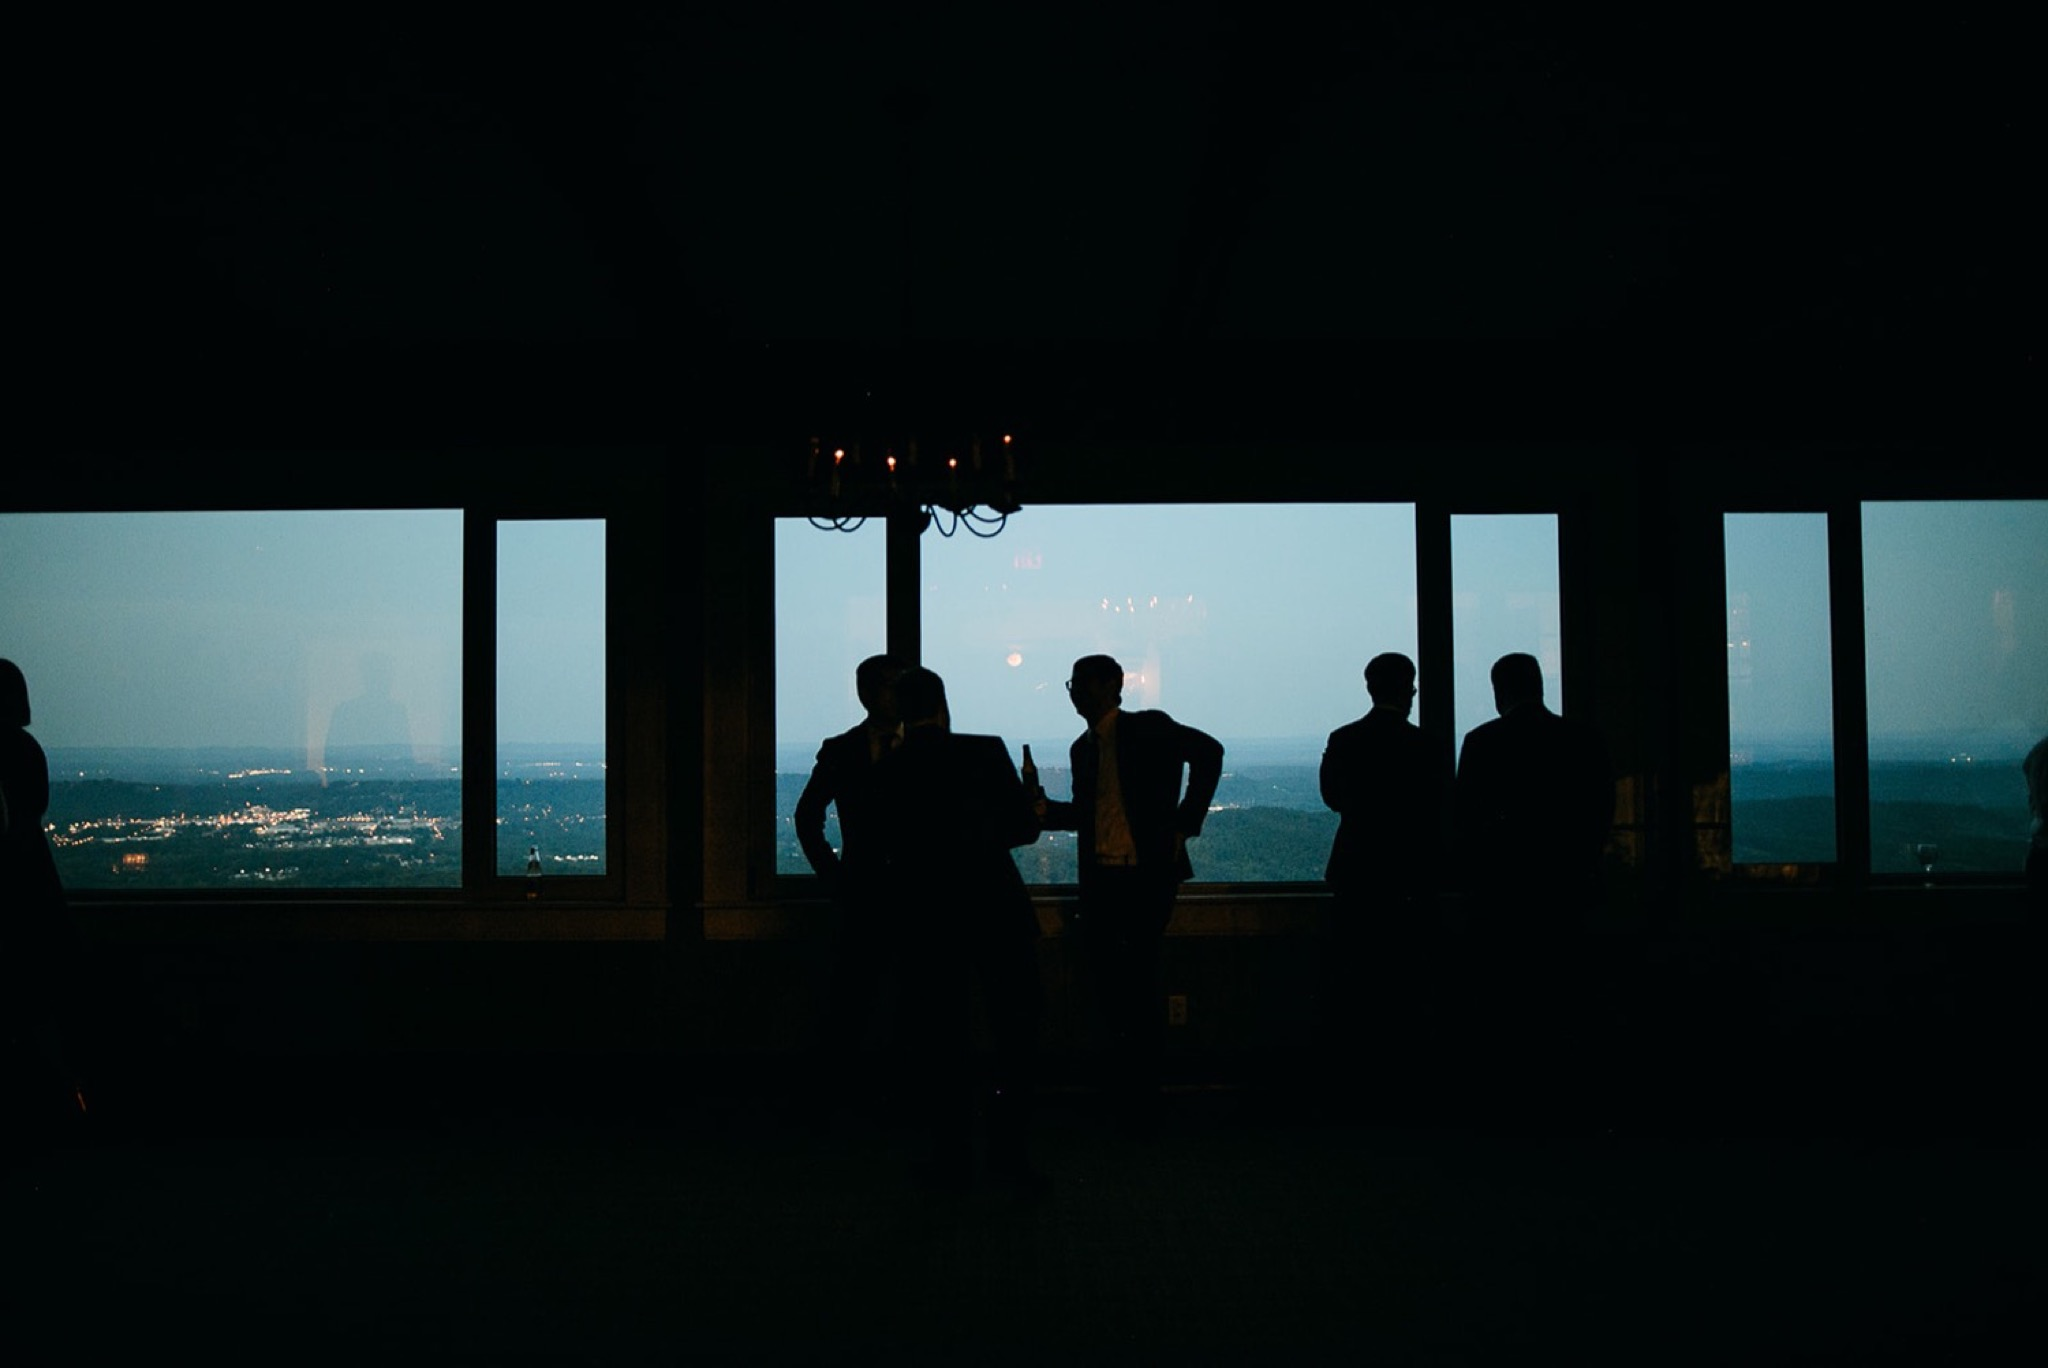 wedding guests silhouettes against large windows overlooking the Chattanooga valley